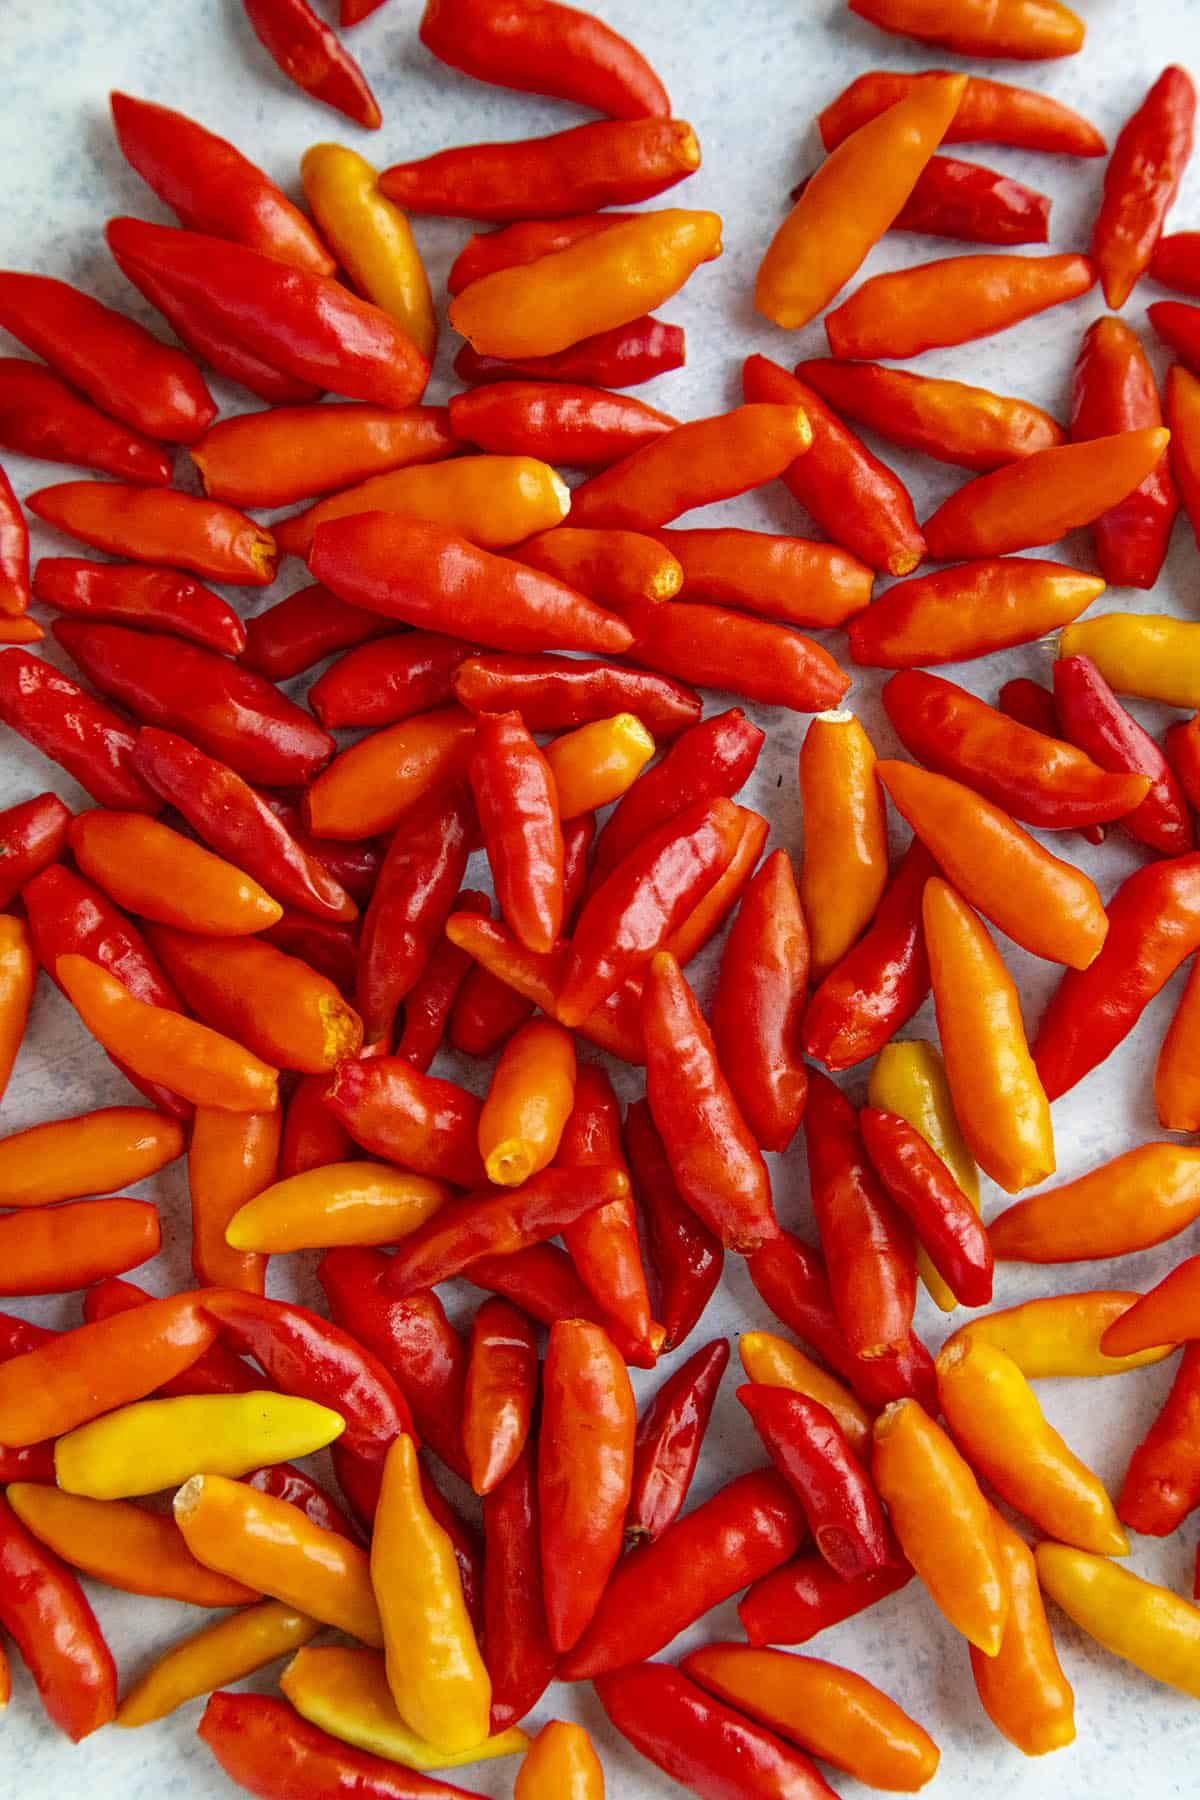 Tabasco Peppers: All About Them